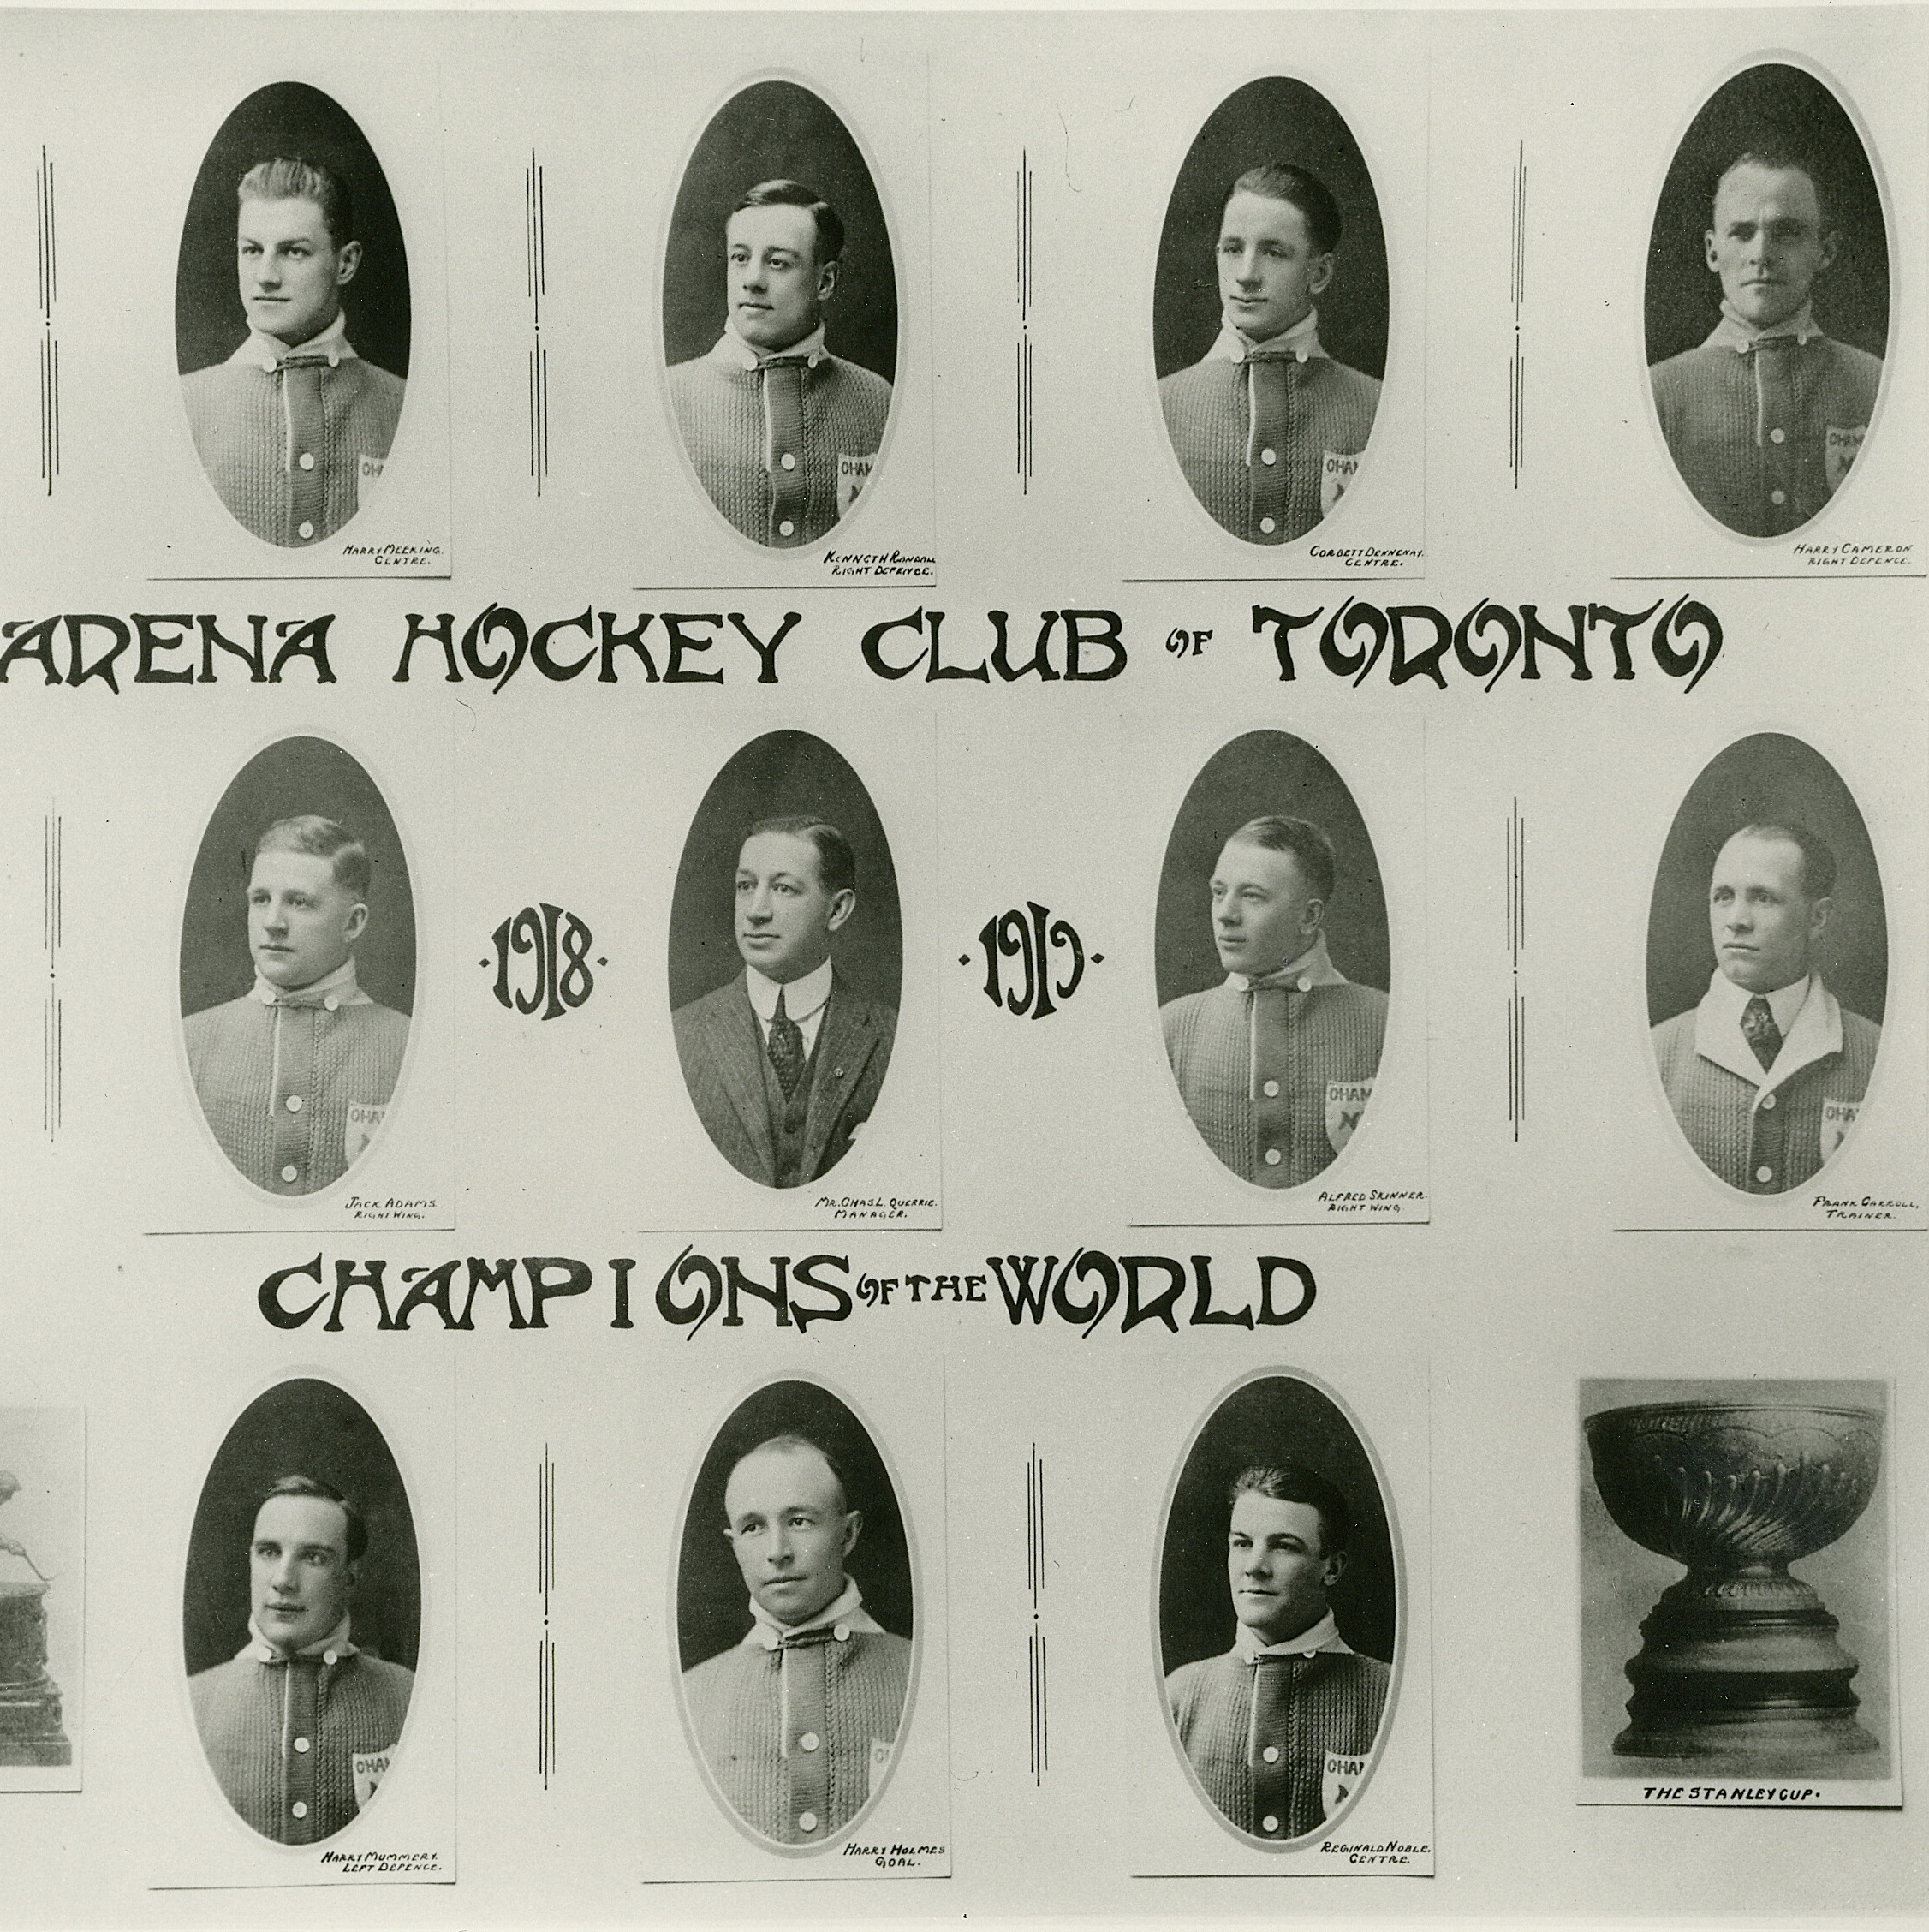 1918 Stanley Cup champion Toronto hockey club